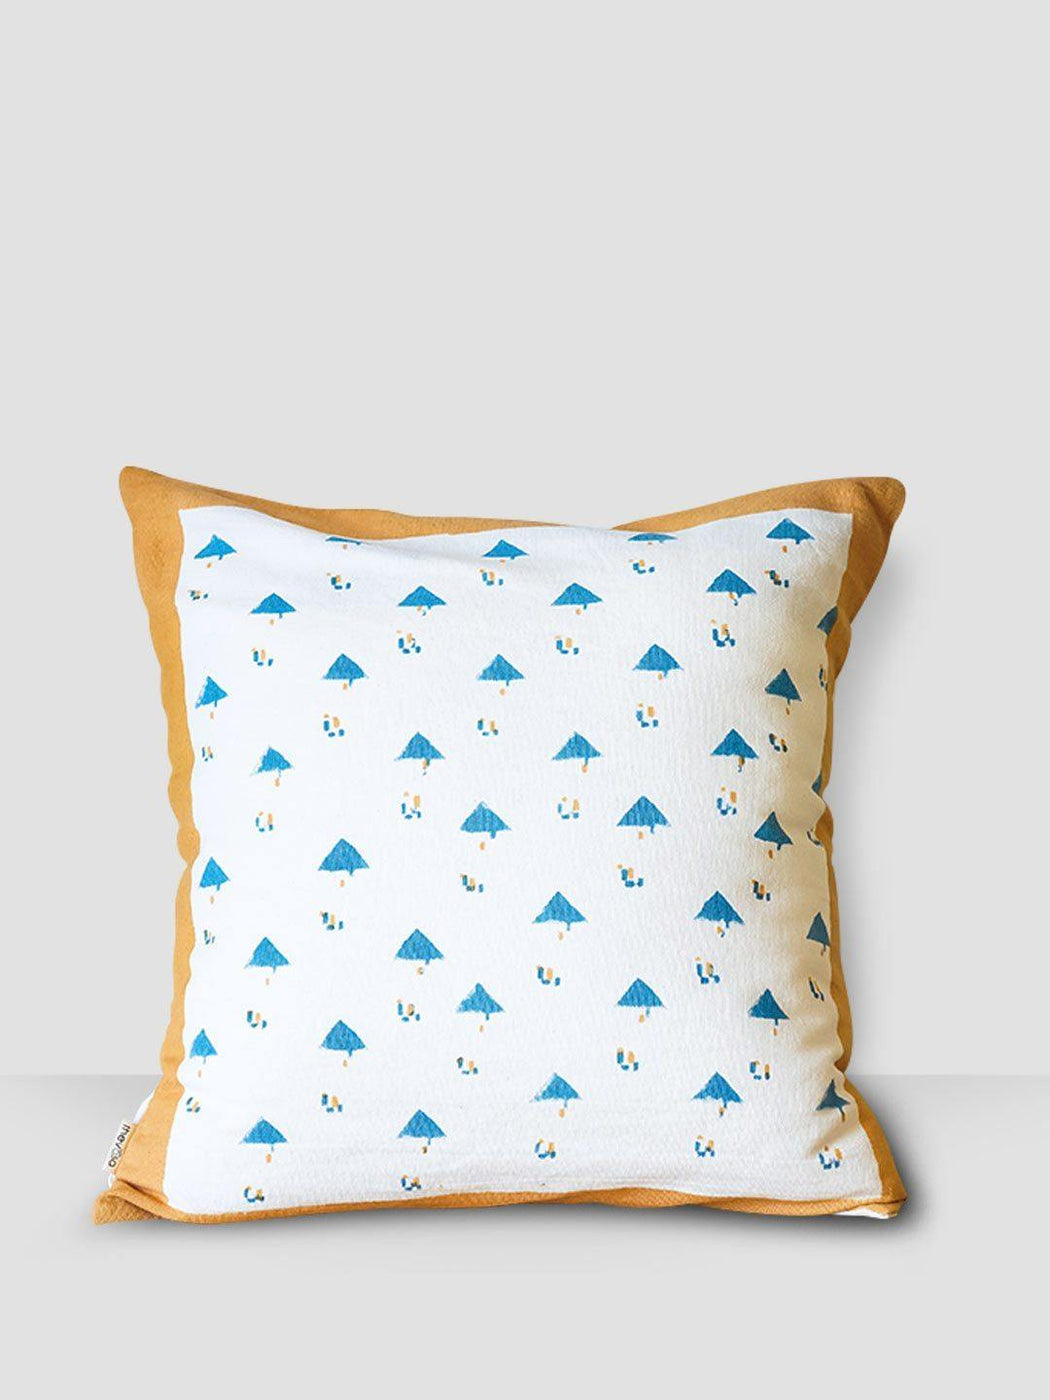 Dome Santorini Cushion Cover - Blue Triangles With Yellow Border - Thevasa